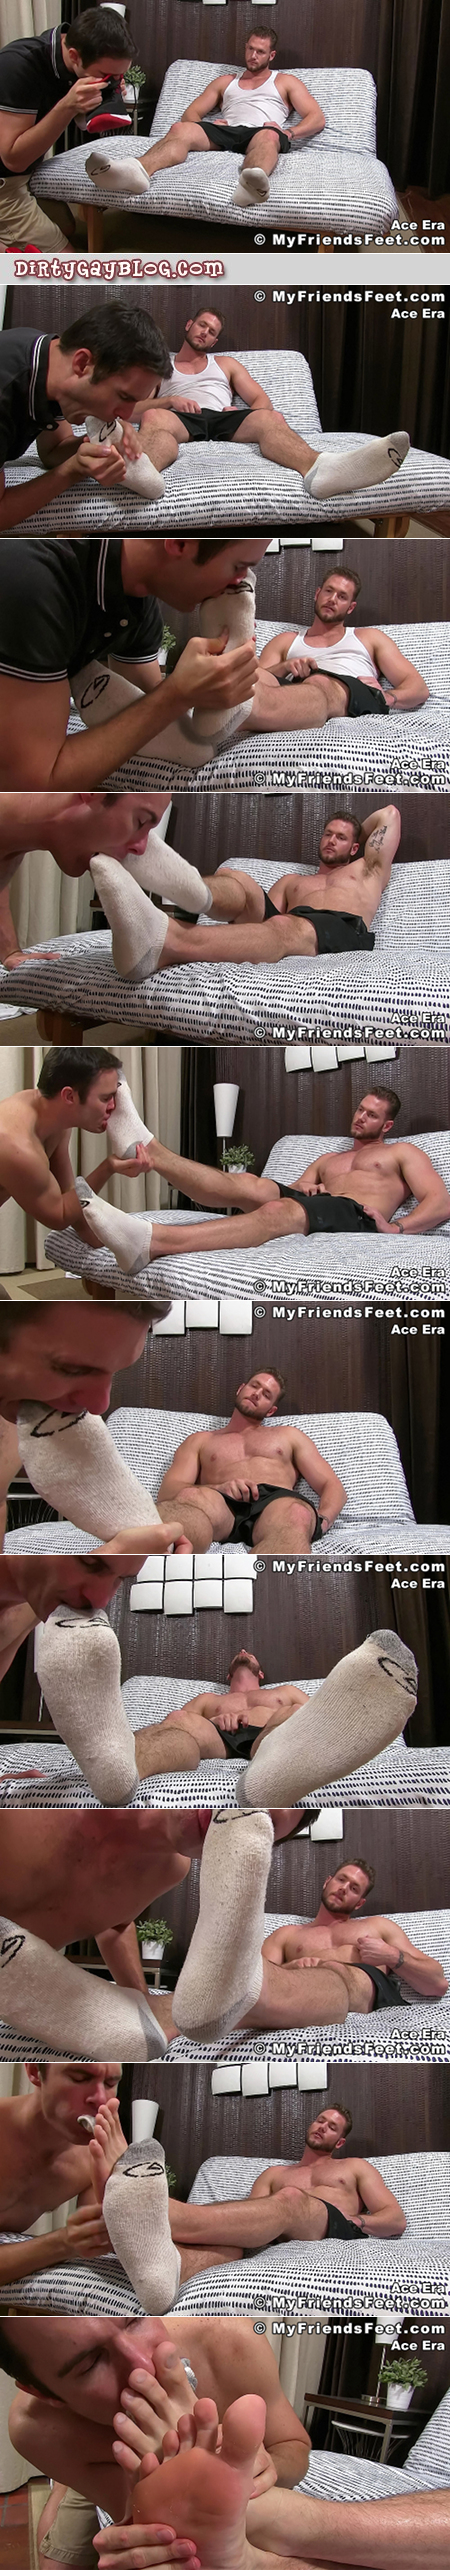 Bearded muscle hunk having his feet worshiped by another man.